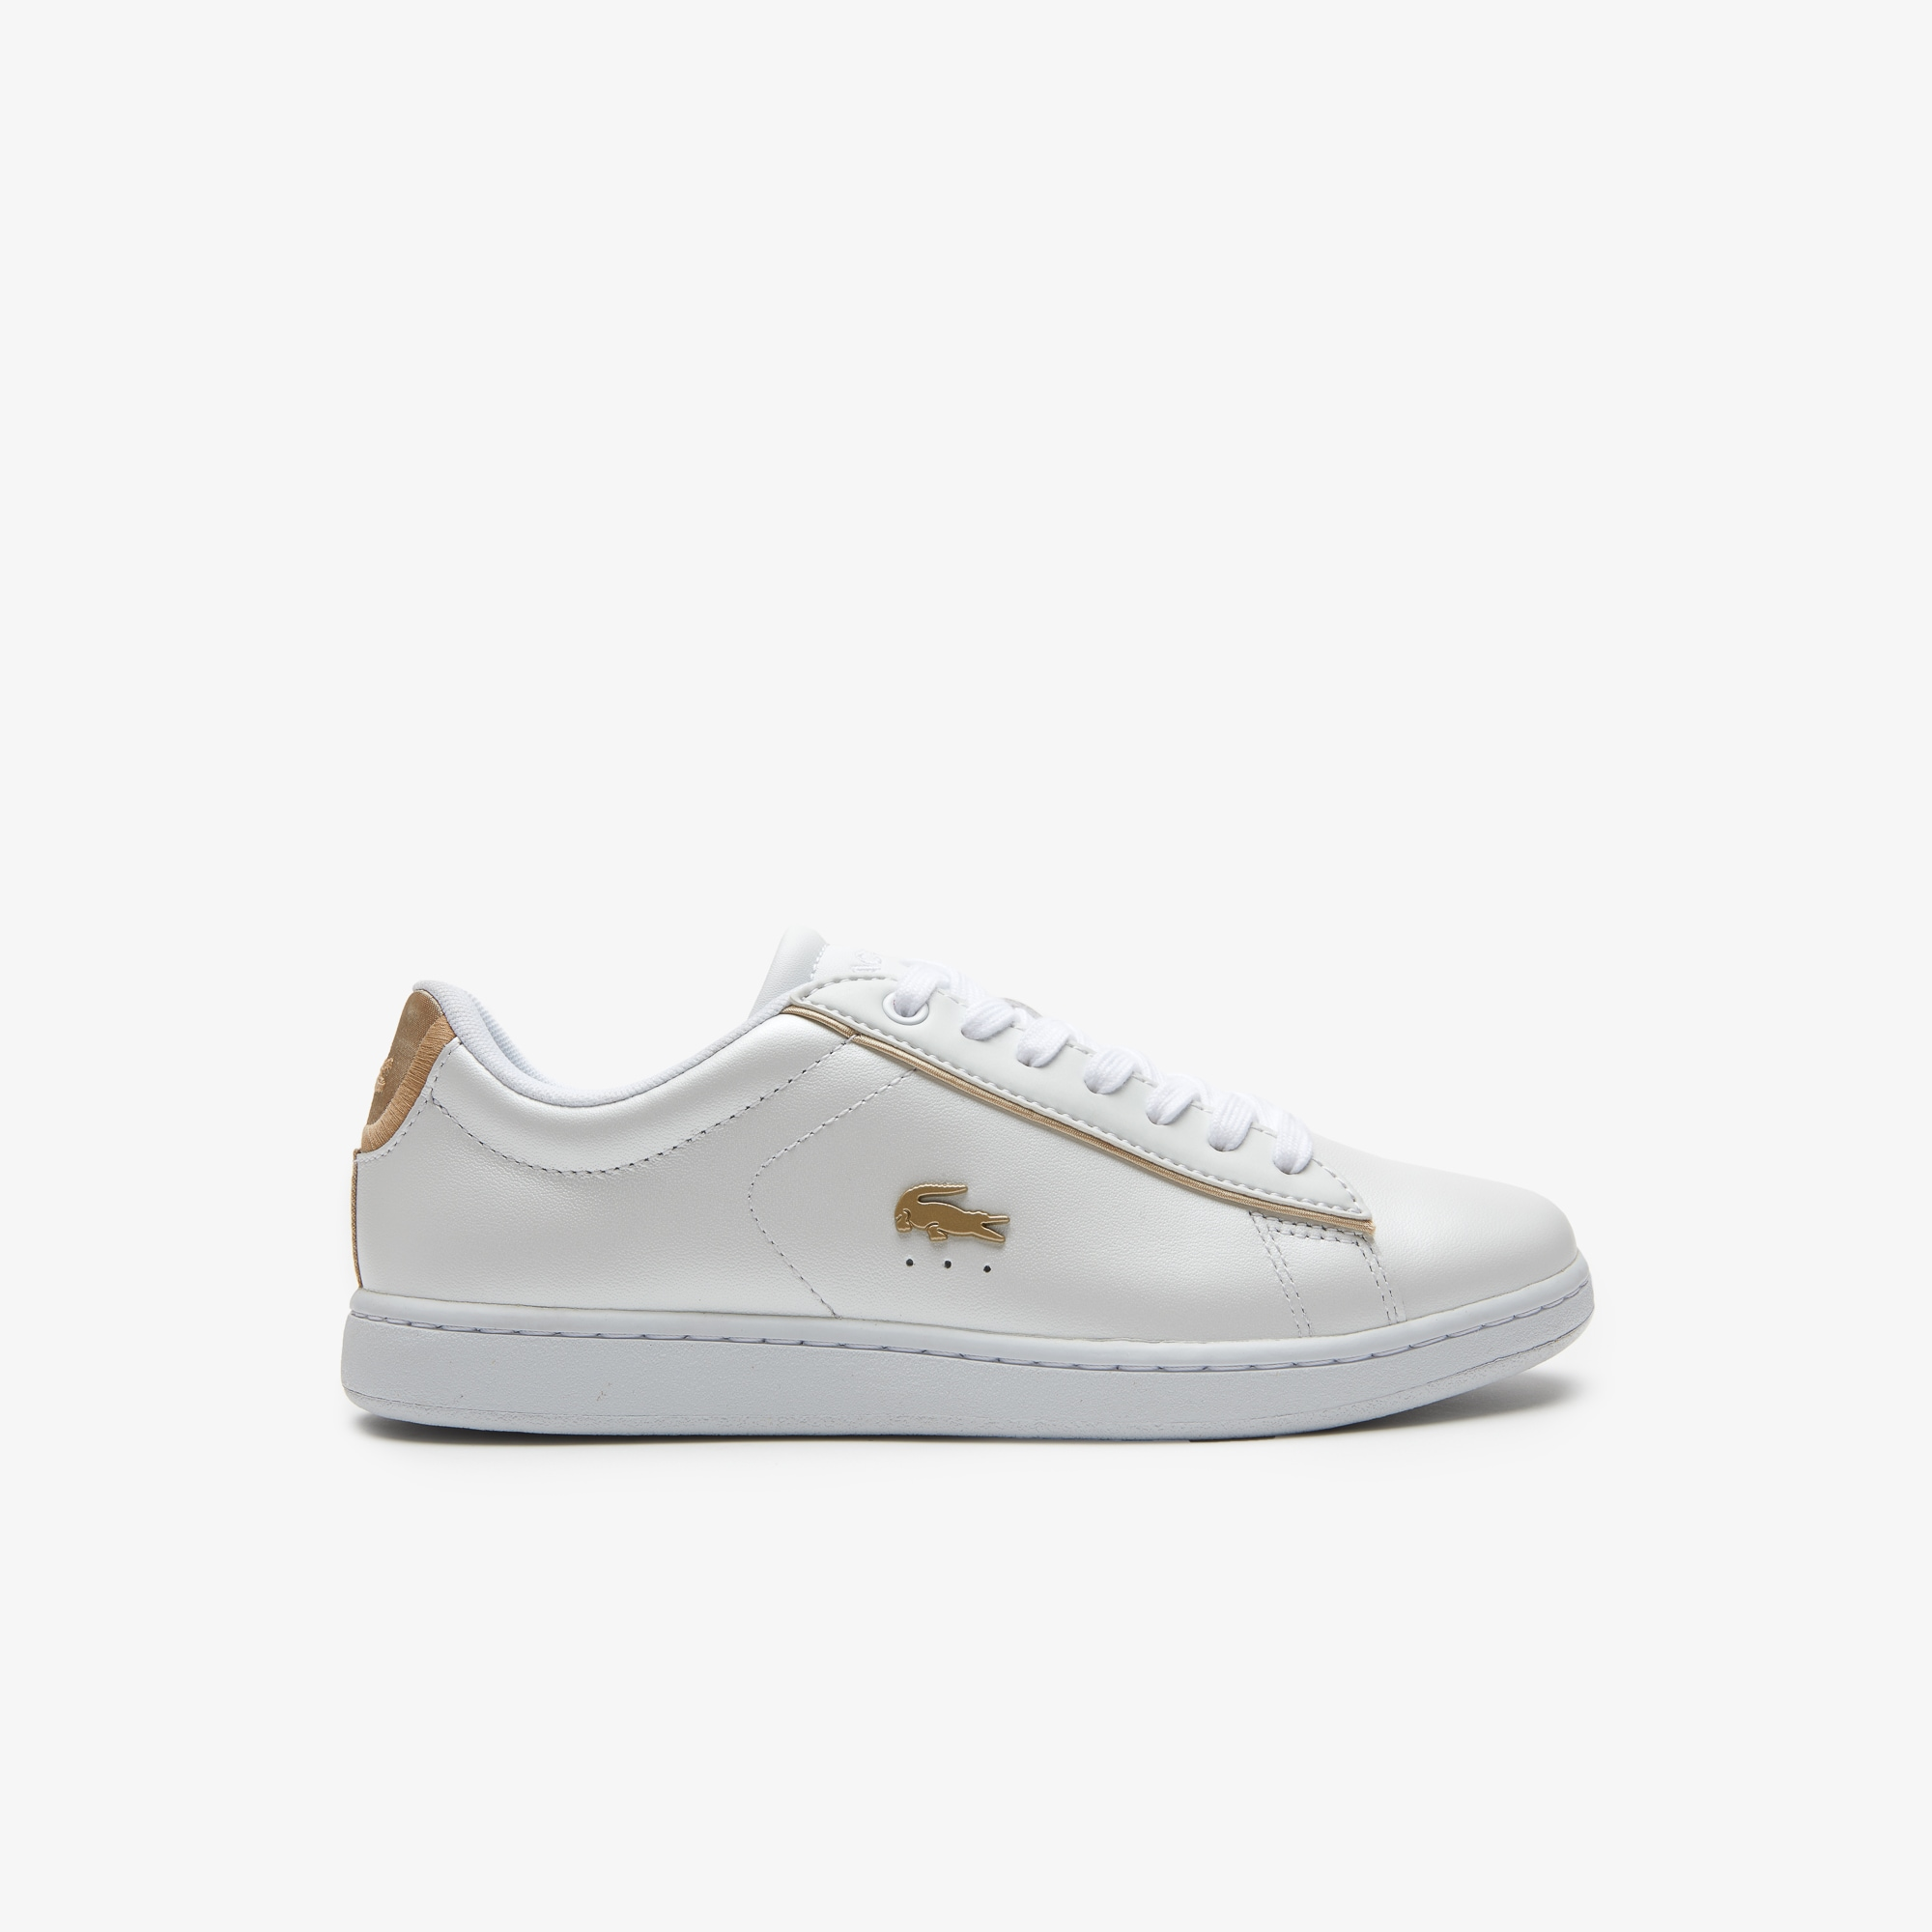 bfc932aff8a150 Women s Carnaby Evo Contrast Leather Trainers